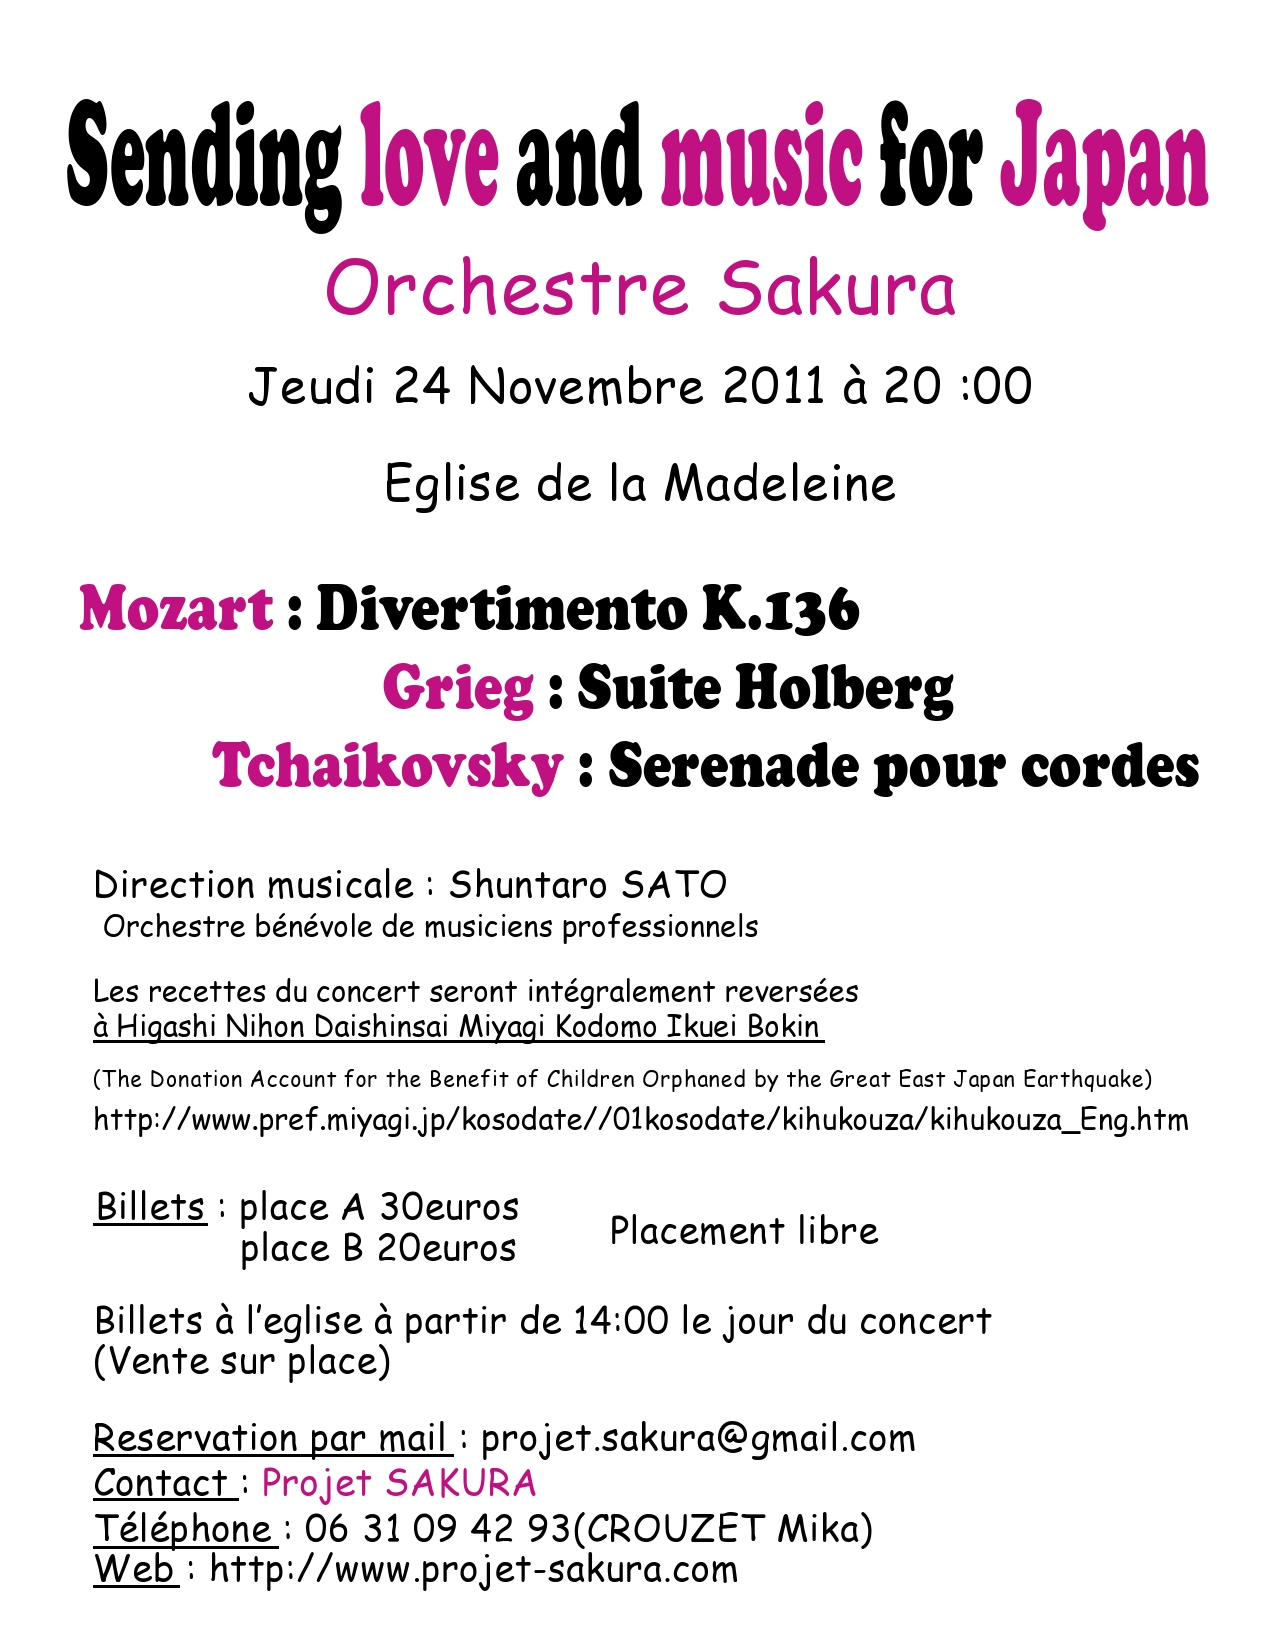 Sending love and music for Japan : Orchestre Sakura